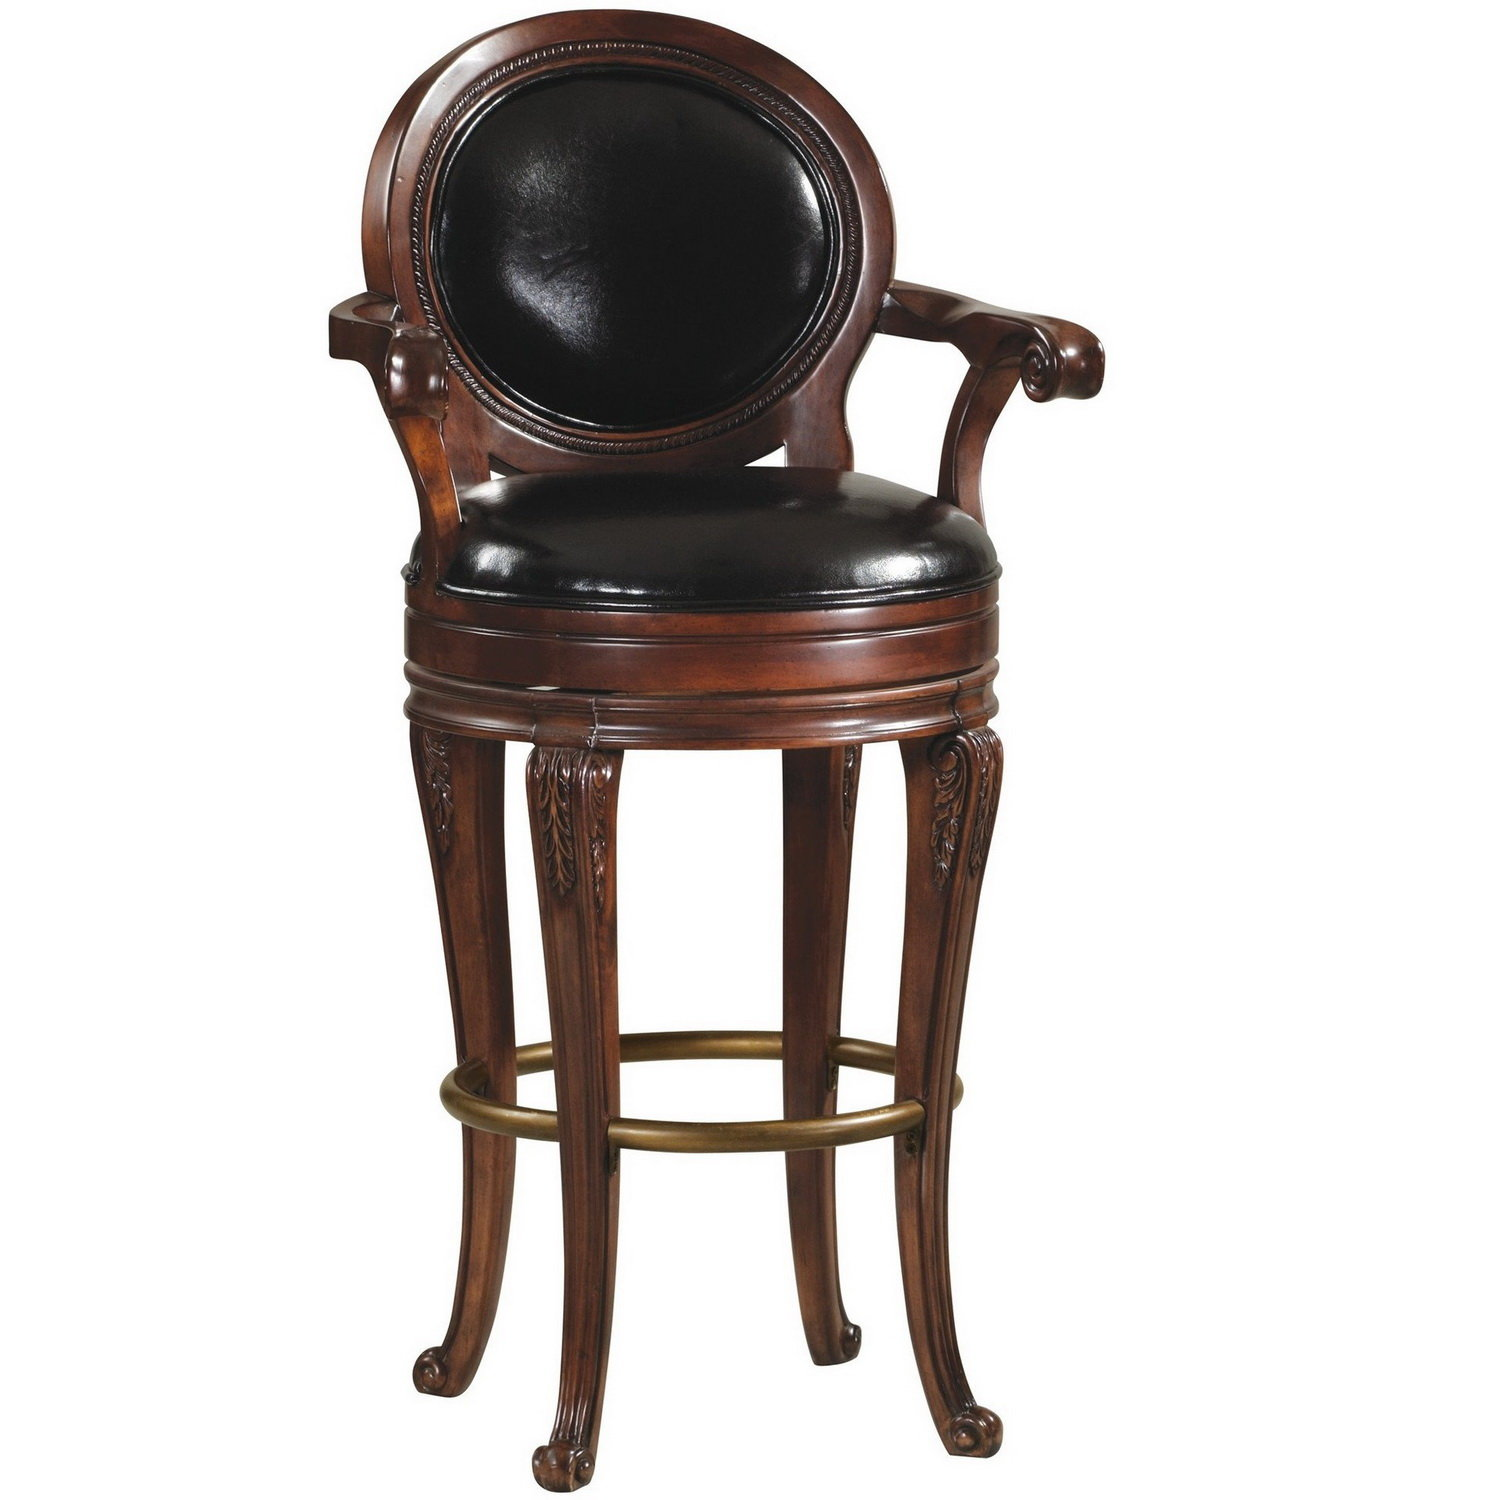 Барный стул Howard Miller Saranac Bar Stool (арт. 697-002)